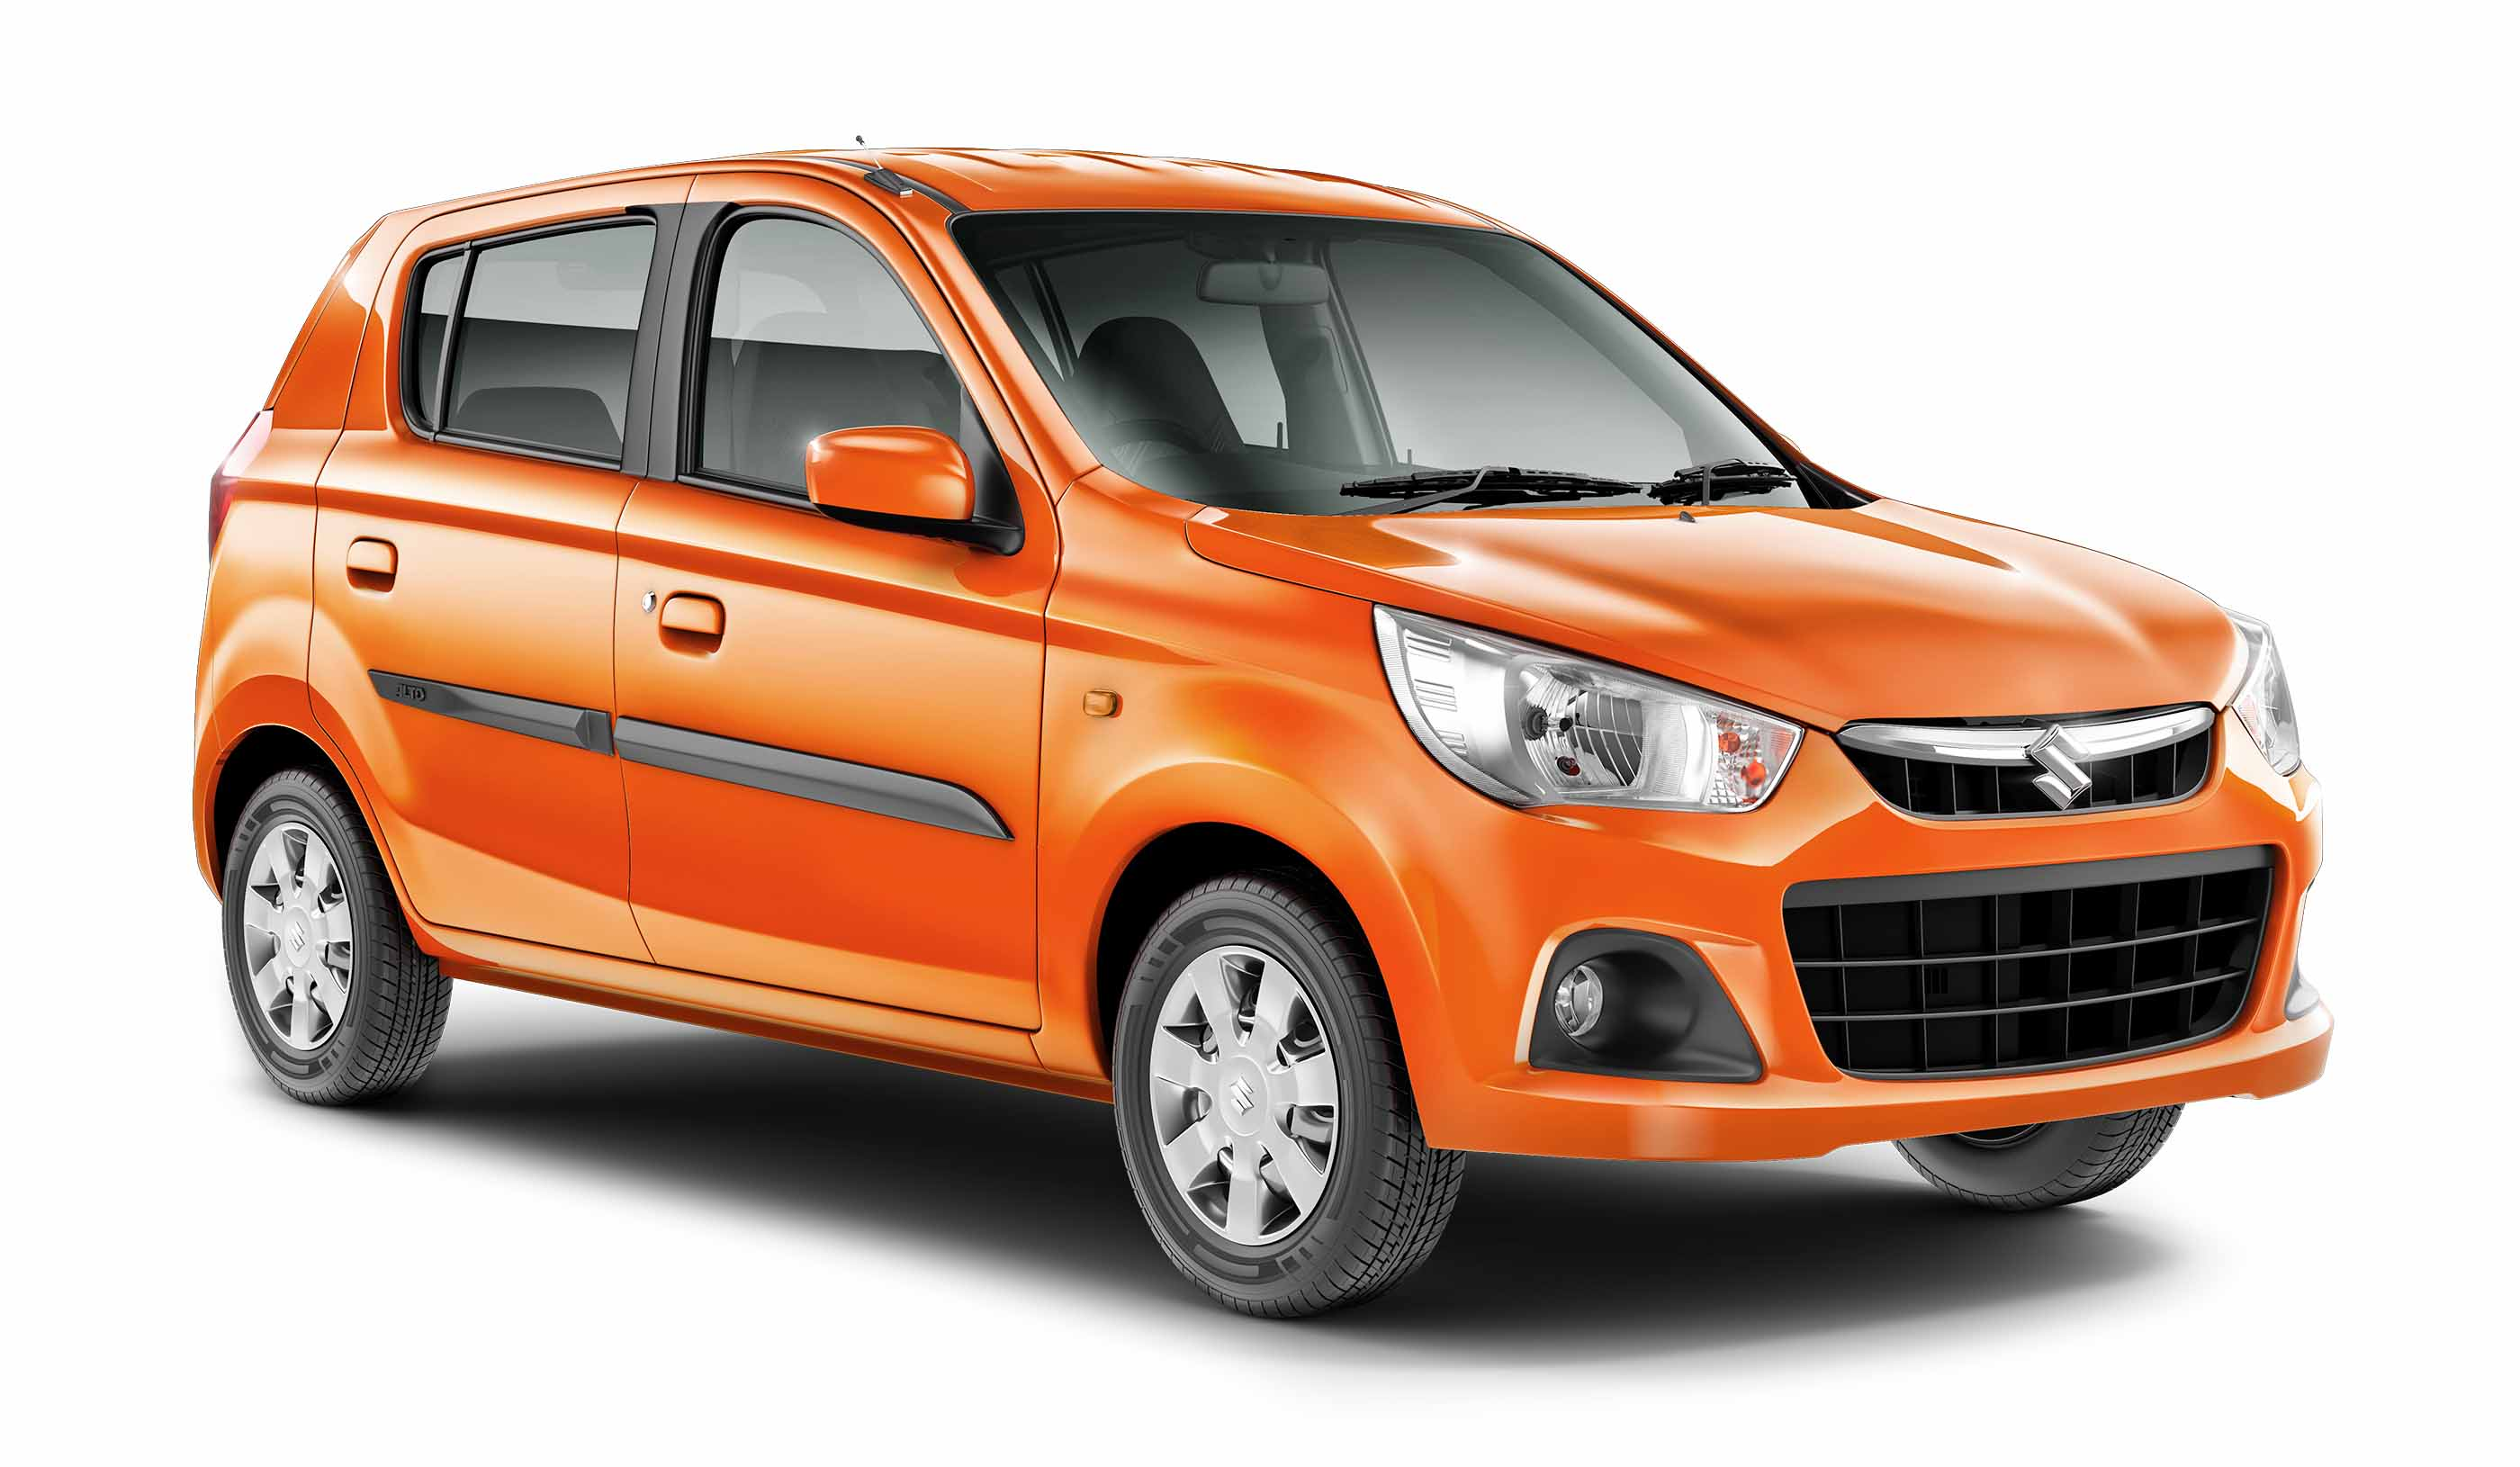 2015-Maruti-Alto-K10-front-quarter-press-shot